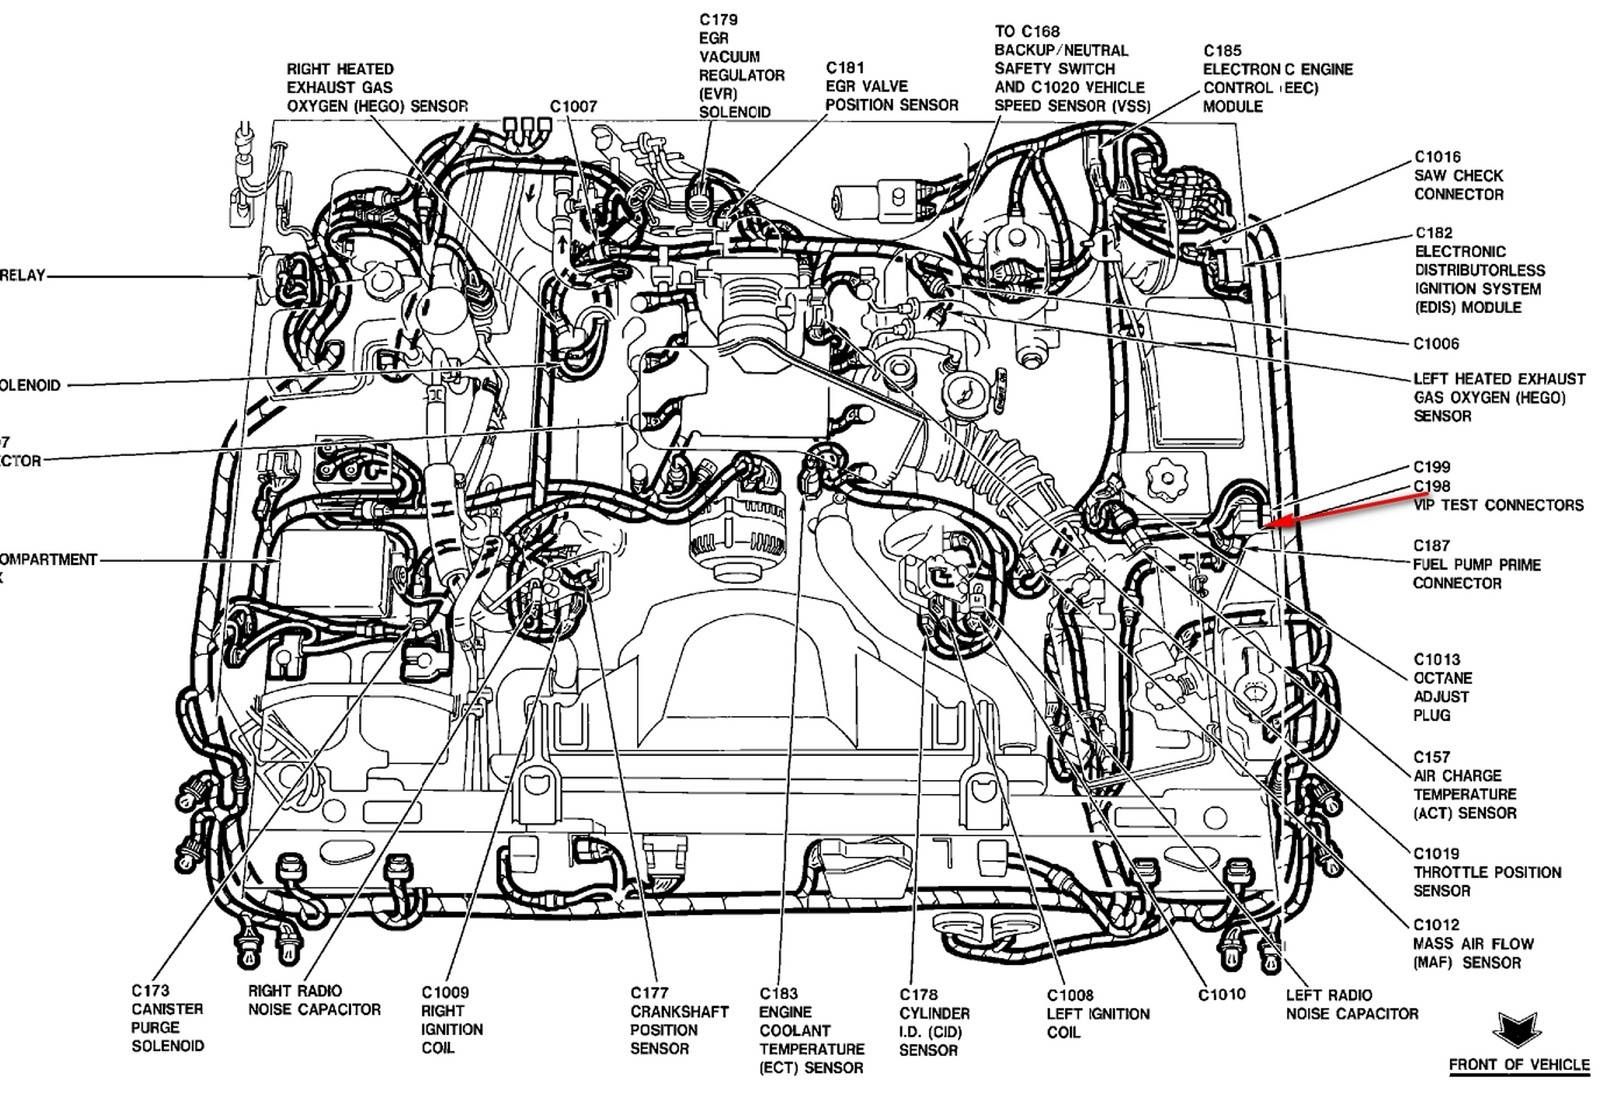 91 Mercury Grand Marquis Wiring Diagram - Wiring Diagrams User on